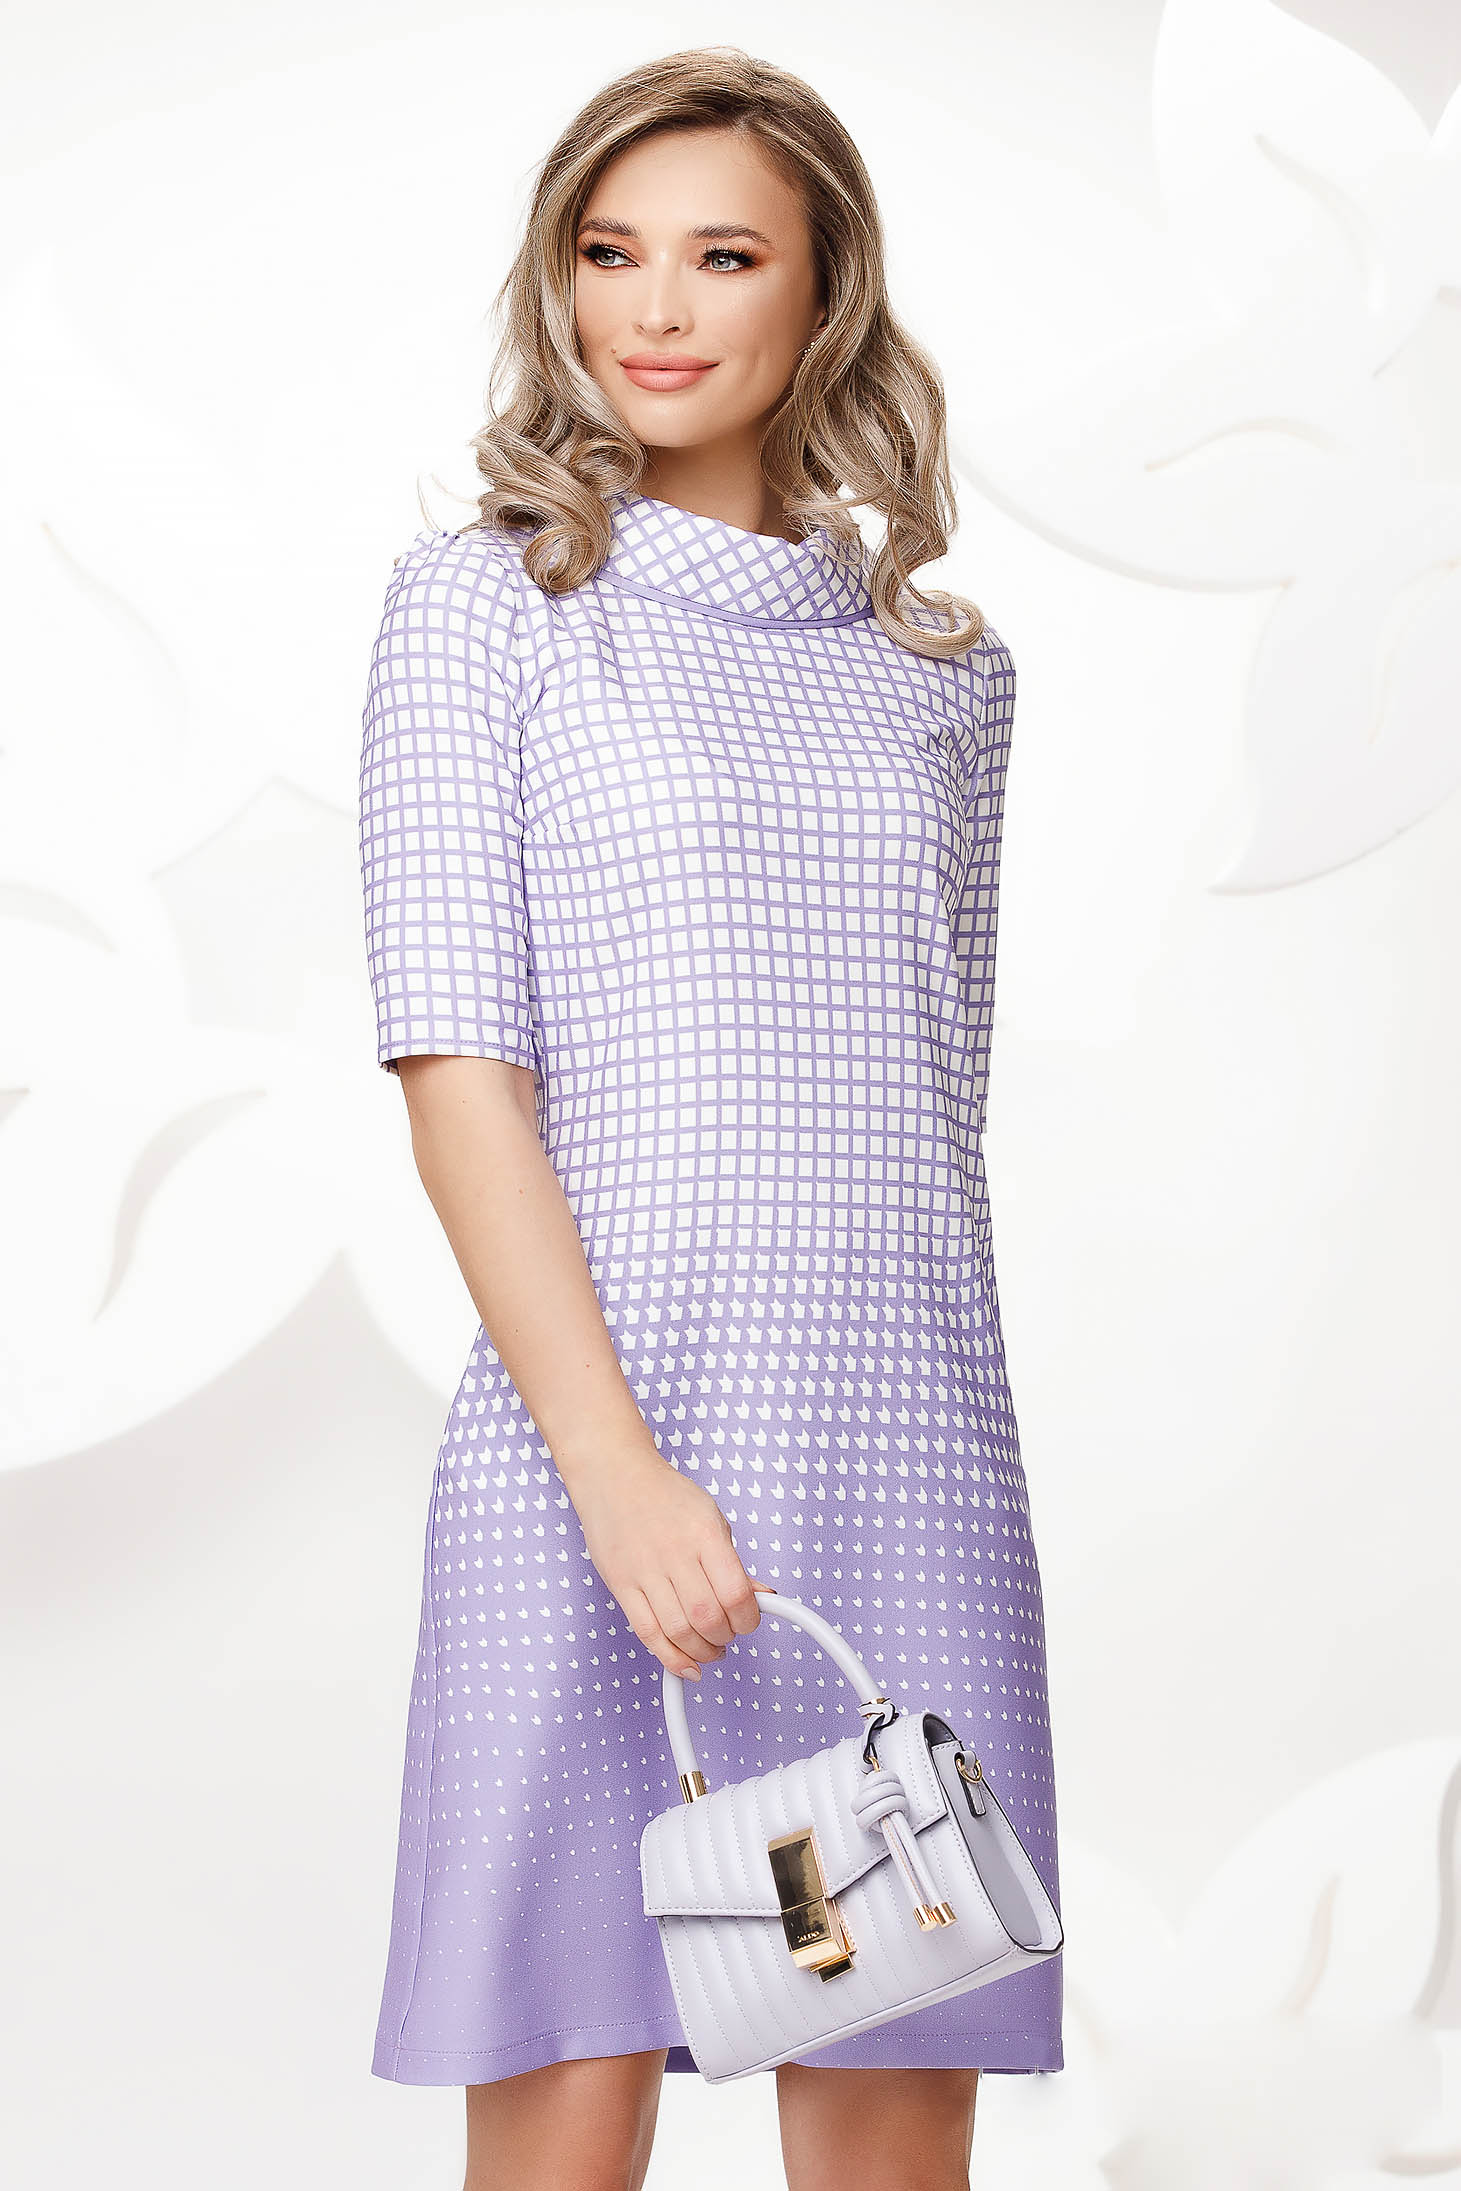 Lila dress office slightly elastic fabric double collar with chequers